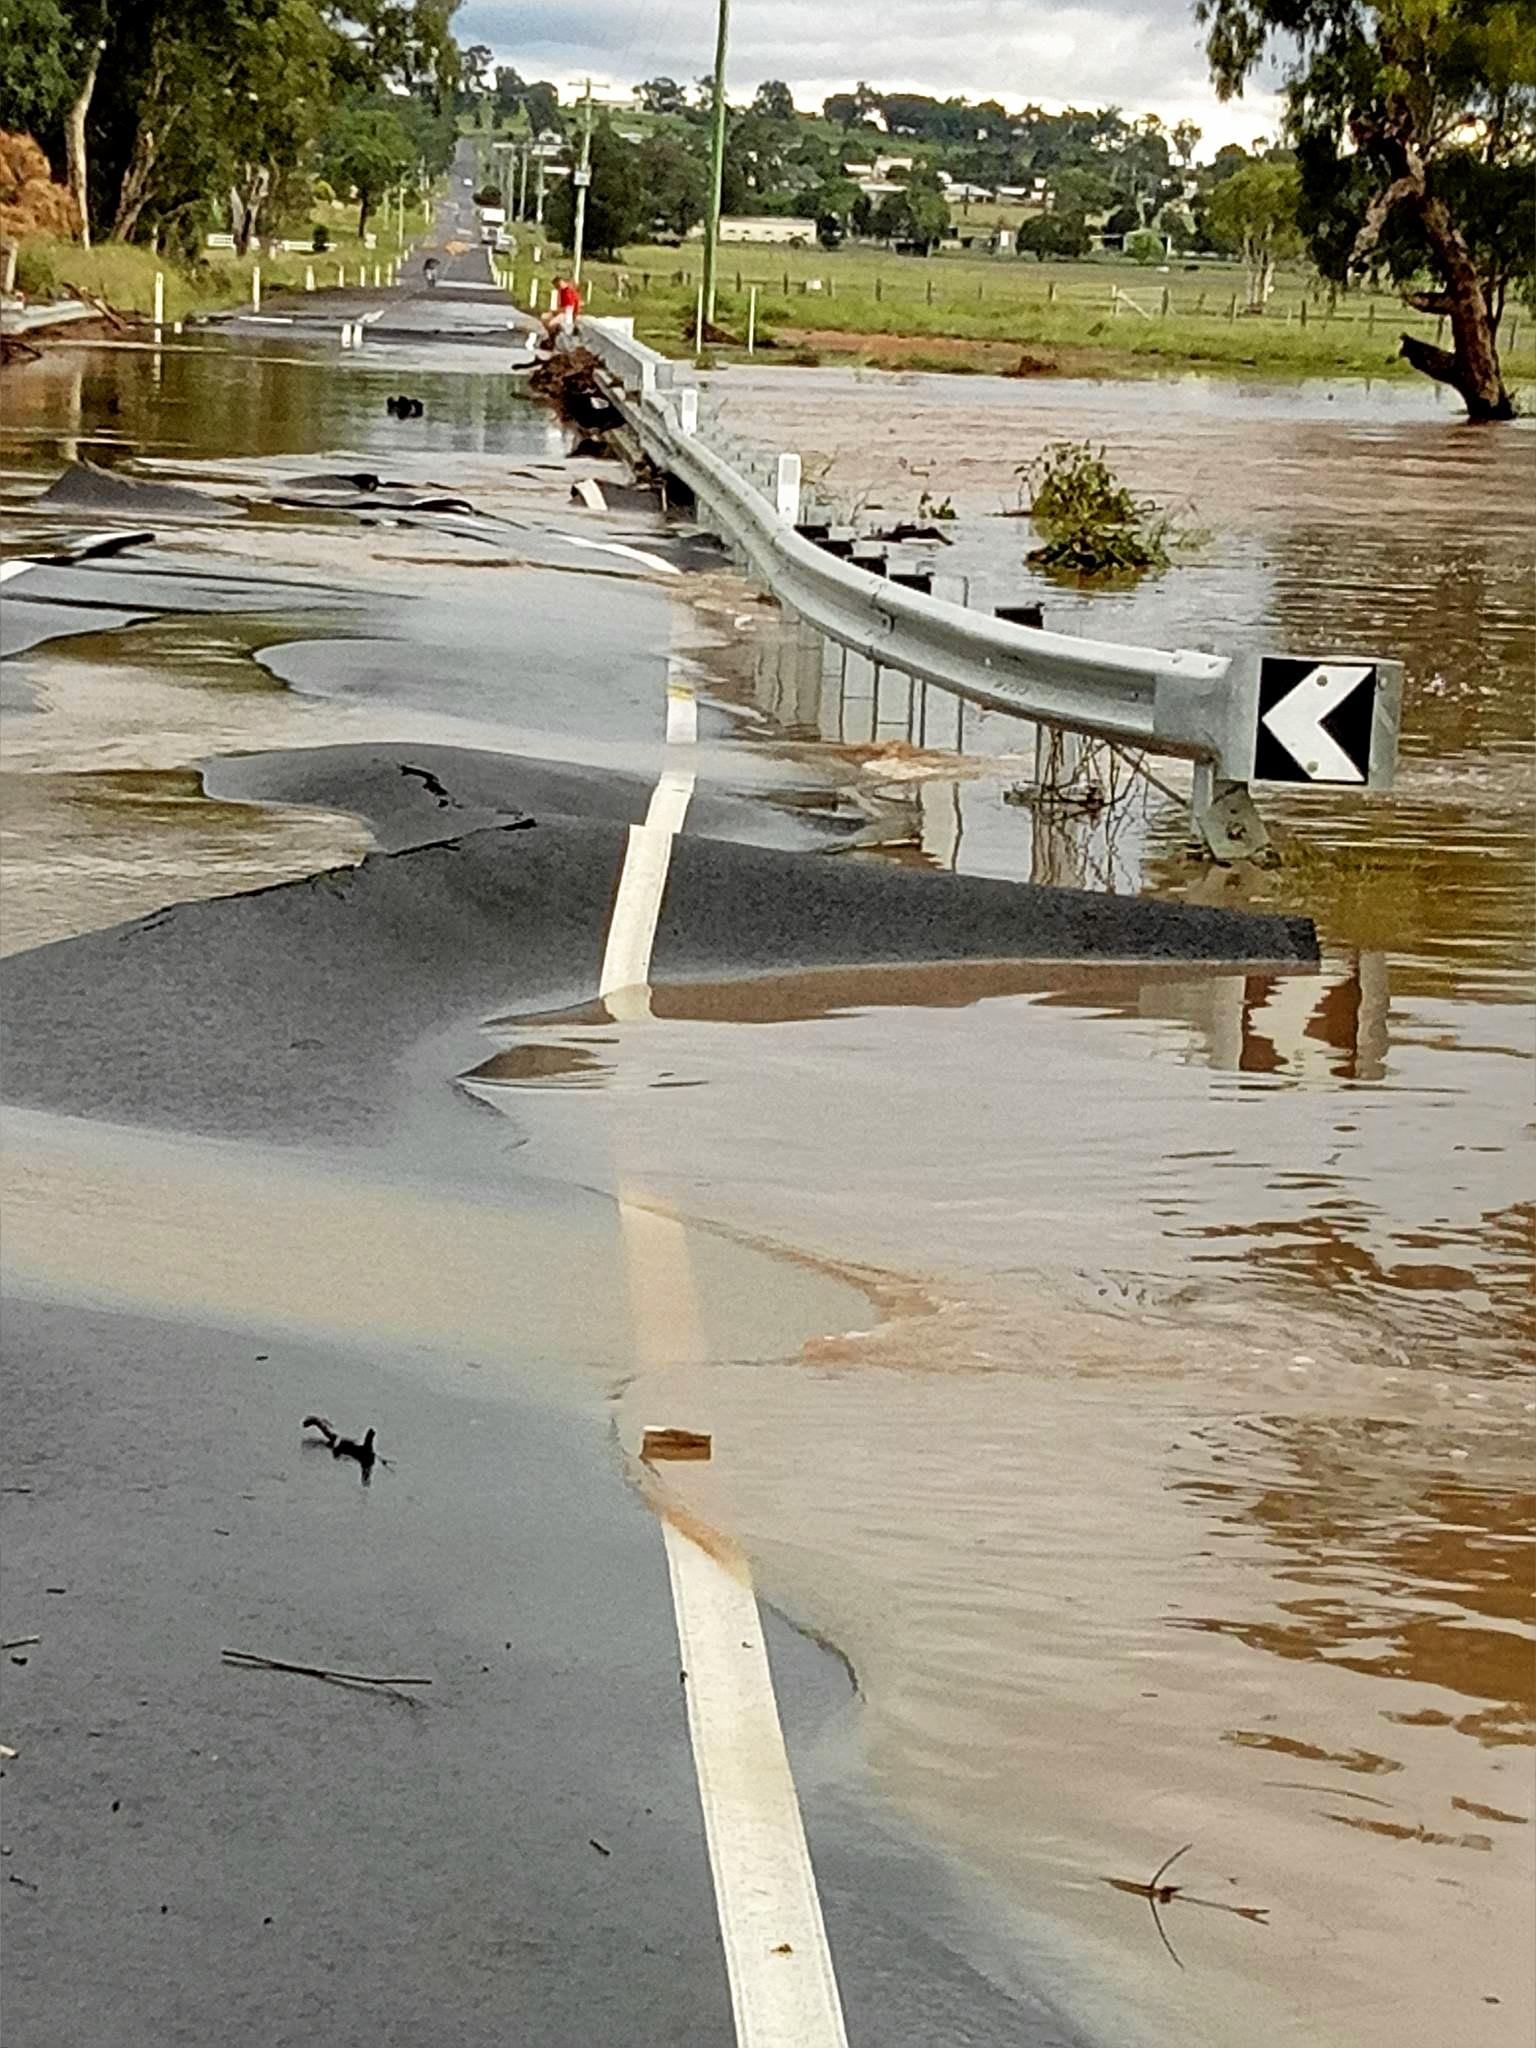 CRACKED UP: Kerri Stone Burmester shared this photo of Lyndhurst Lane Bridge damaged by floodwaters on Warwick Community Noticeboard this morning.